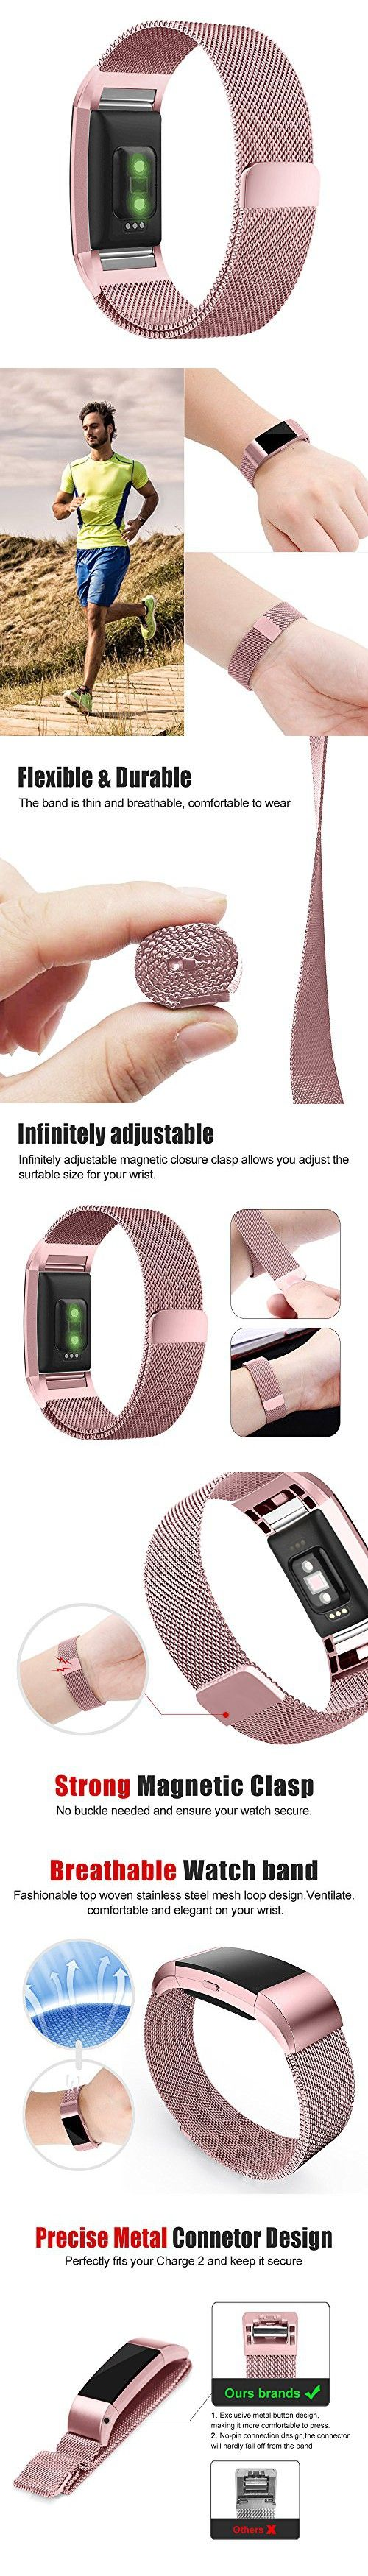 Fitbit Charge 2 Band, UMTELE Milanese Loop Stainless Steel Metal Bracelet Strap with Unique Magnet Lock, No Buckle Needed for Fitbit Charge 2 HR Fitness Tracker Pink Gold Small